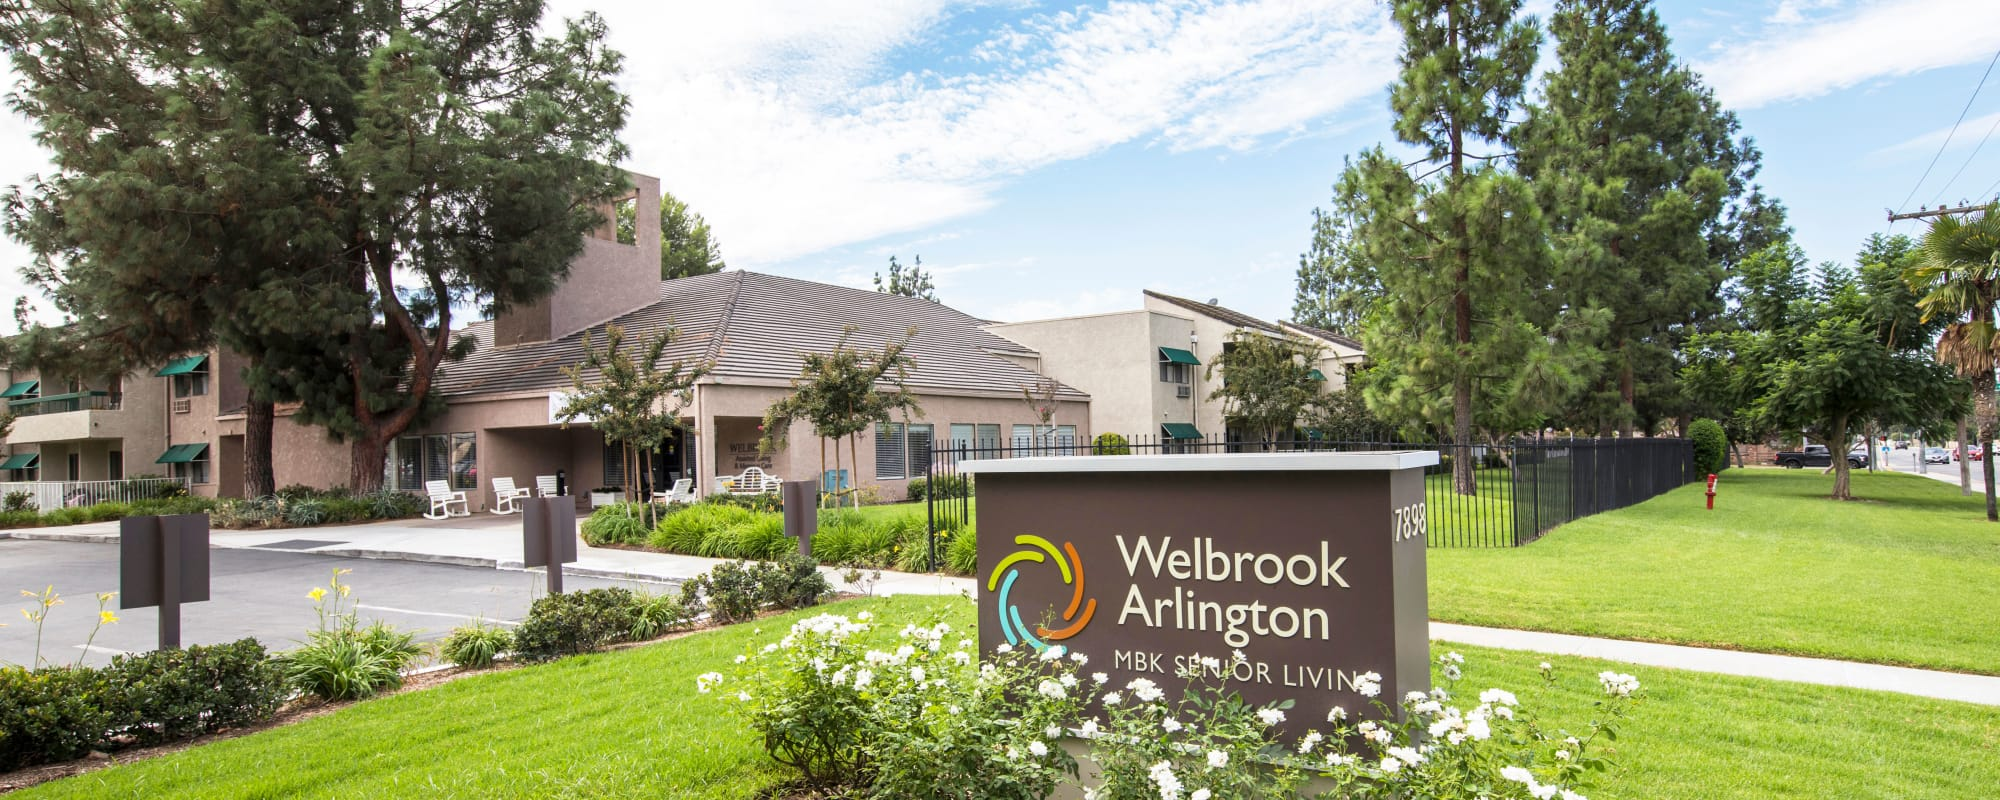 Welcome sign at Welbrook Arlington in Riverside, California